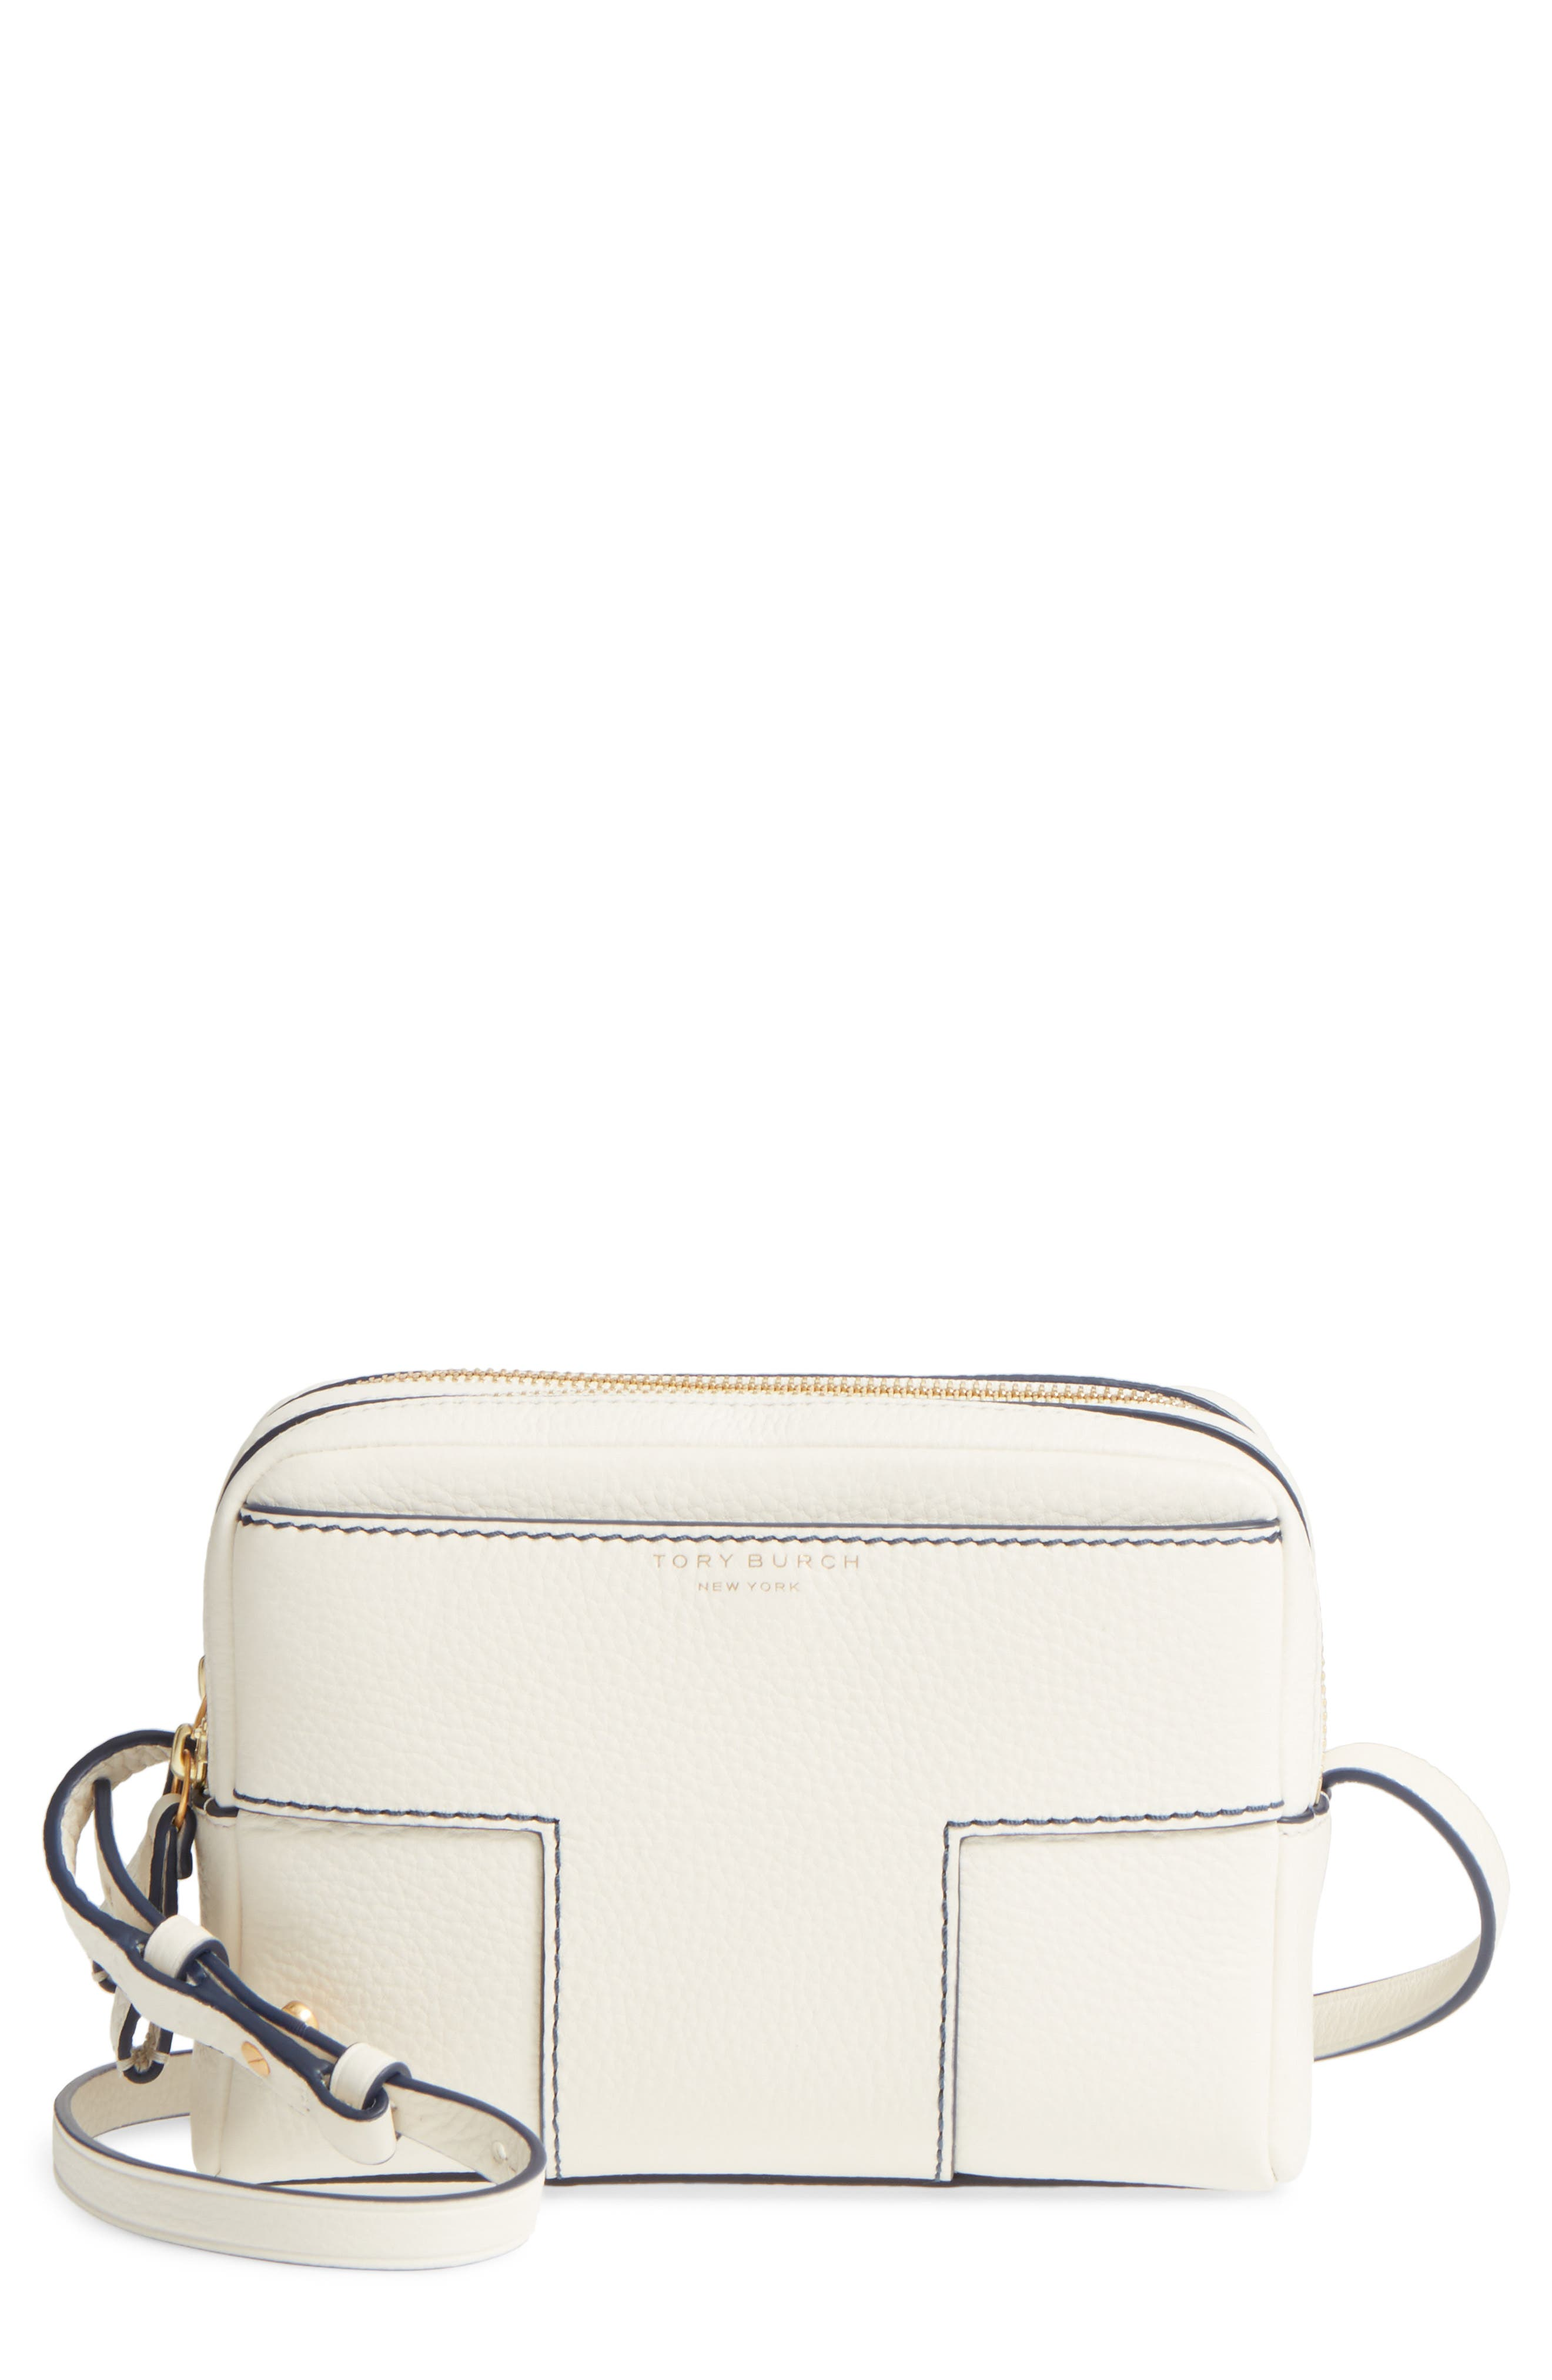 Block-T Double Zip Leather Crossbody Bag,                         Main,                         color, New Ivory